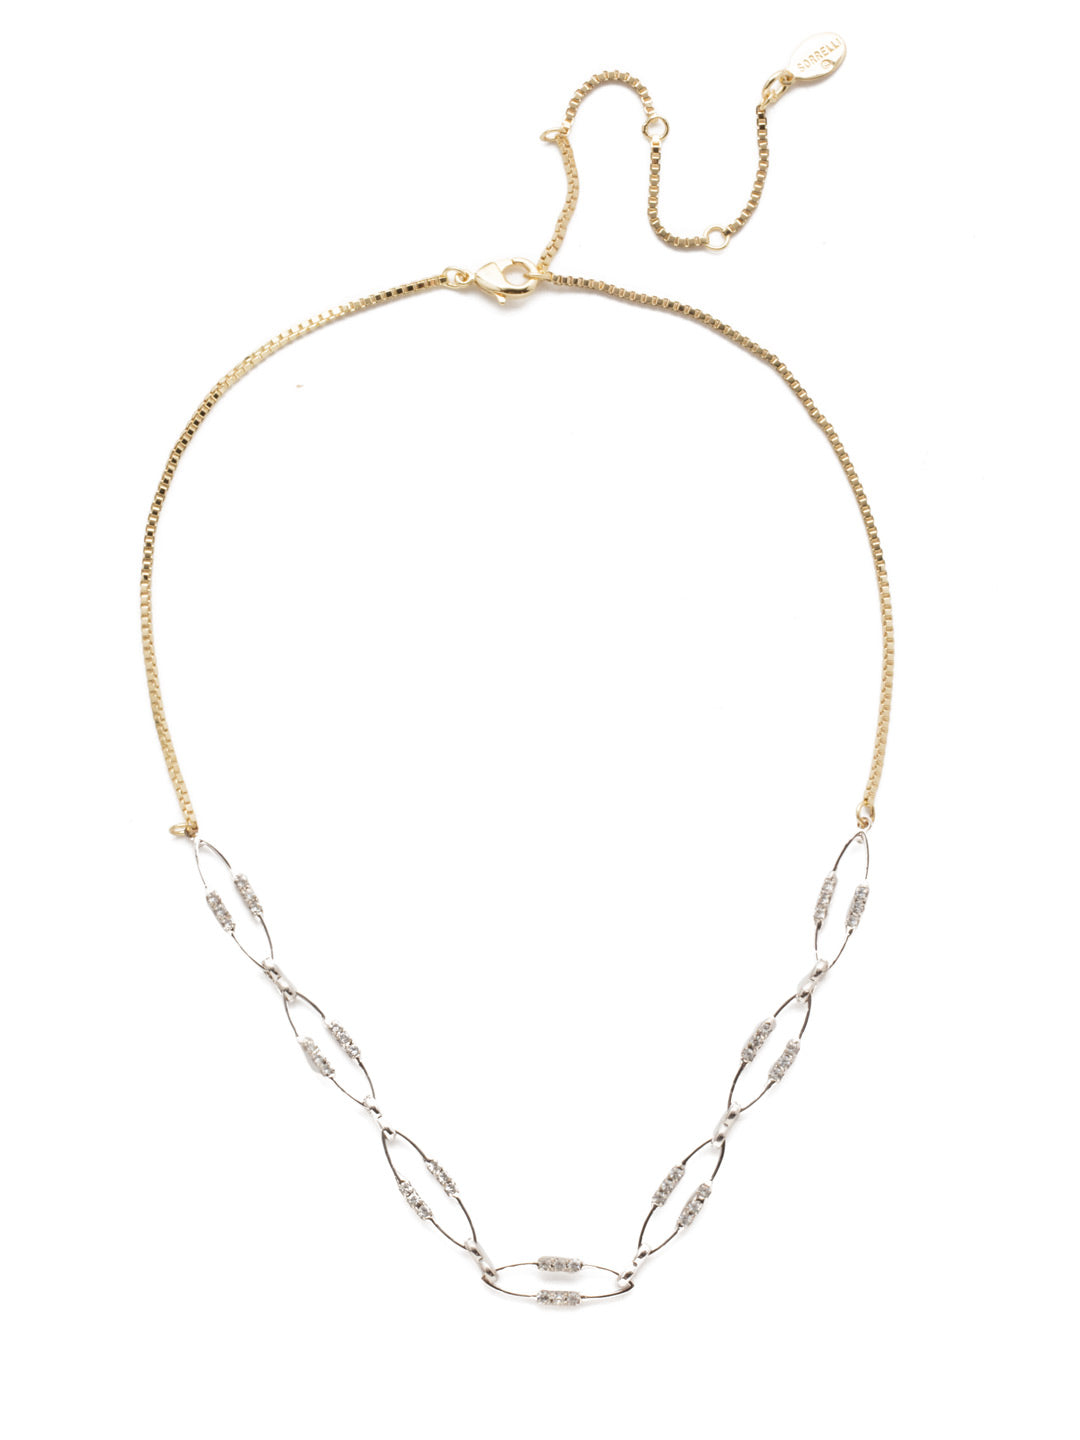 Iliana Elipse Crystal Tennis Necklace - 4NEK25MXCRY